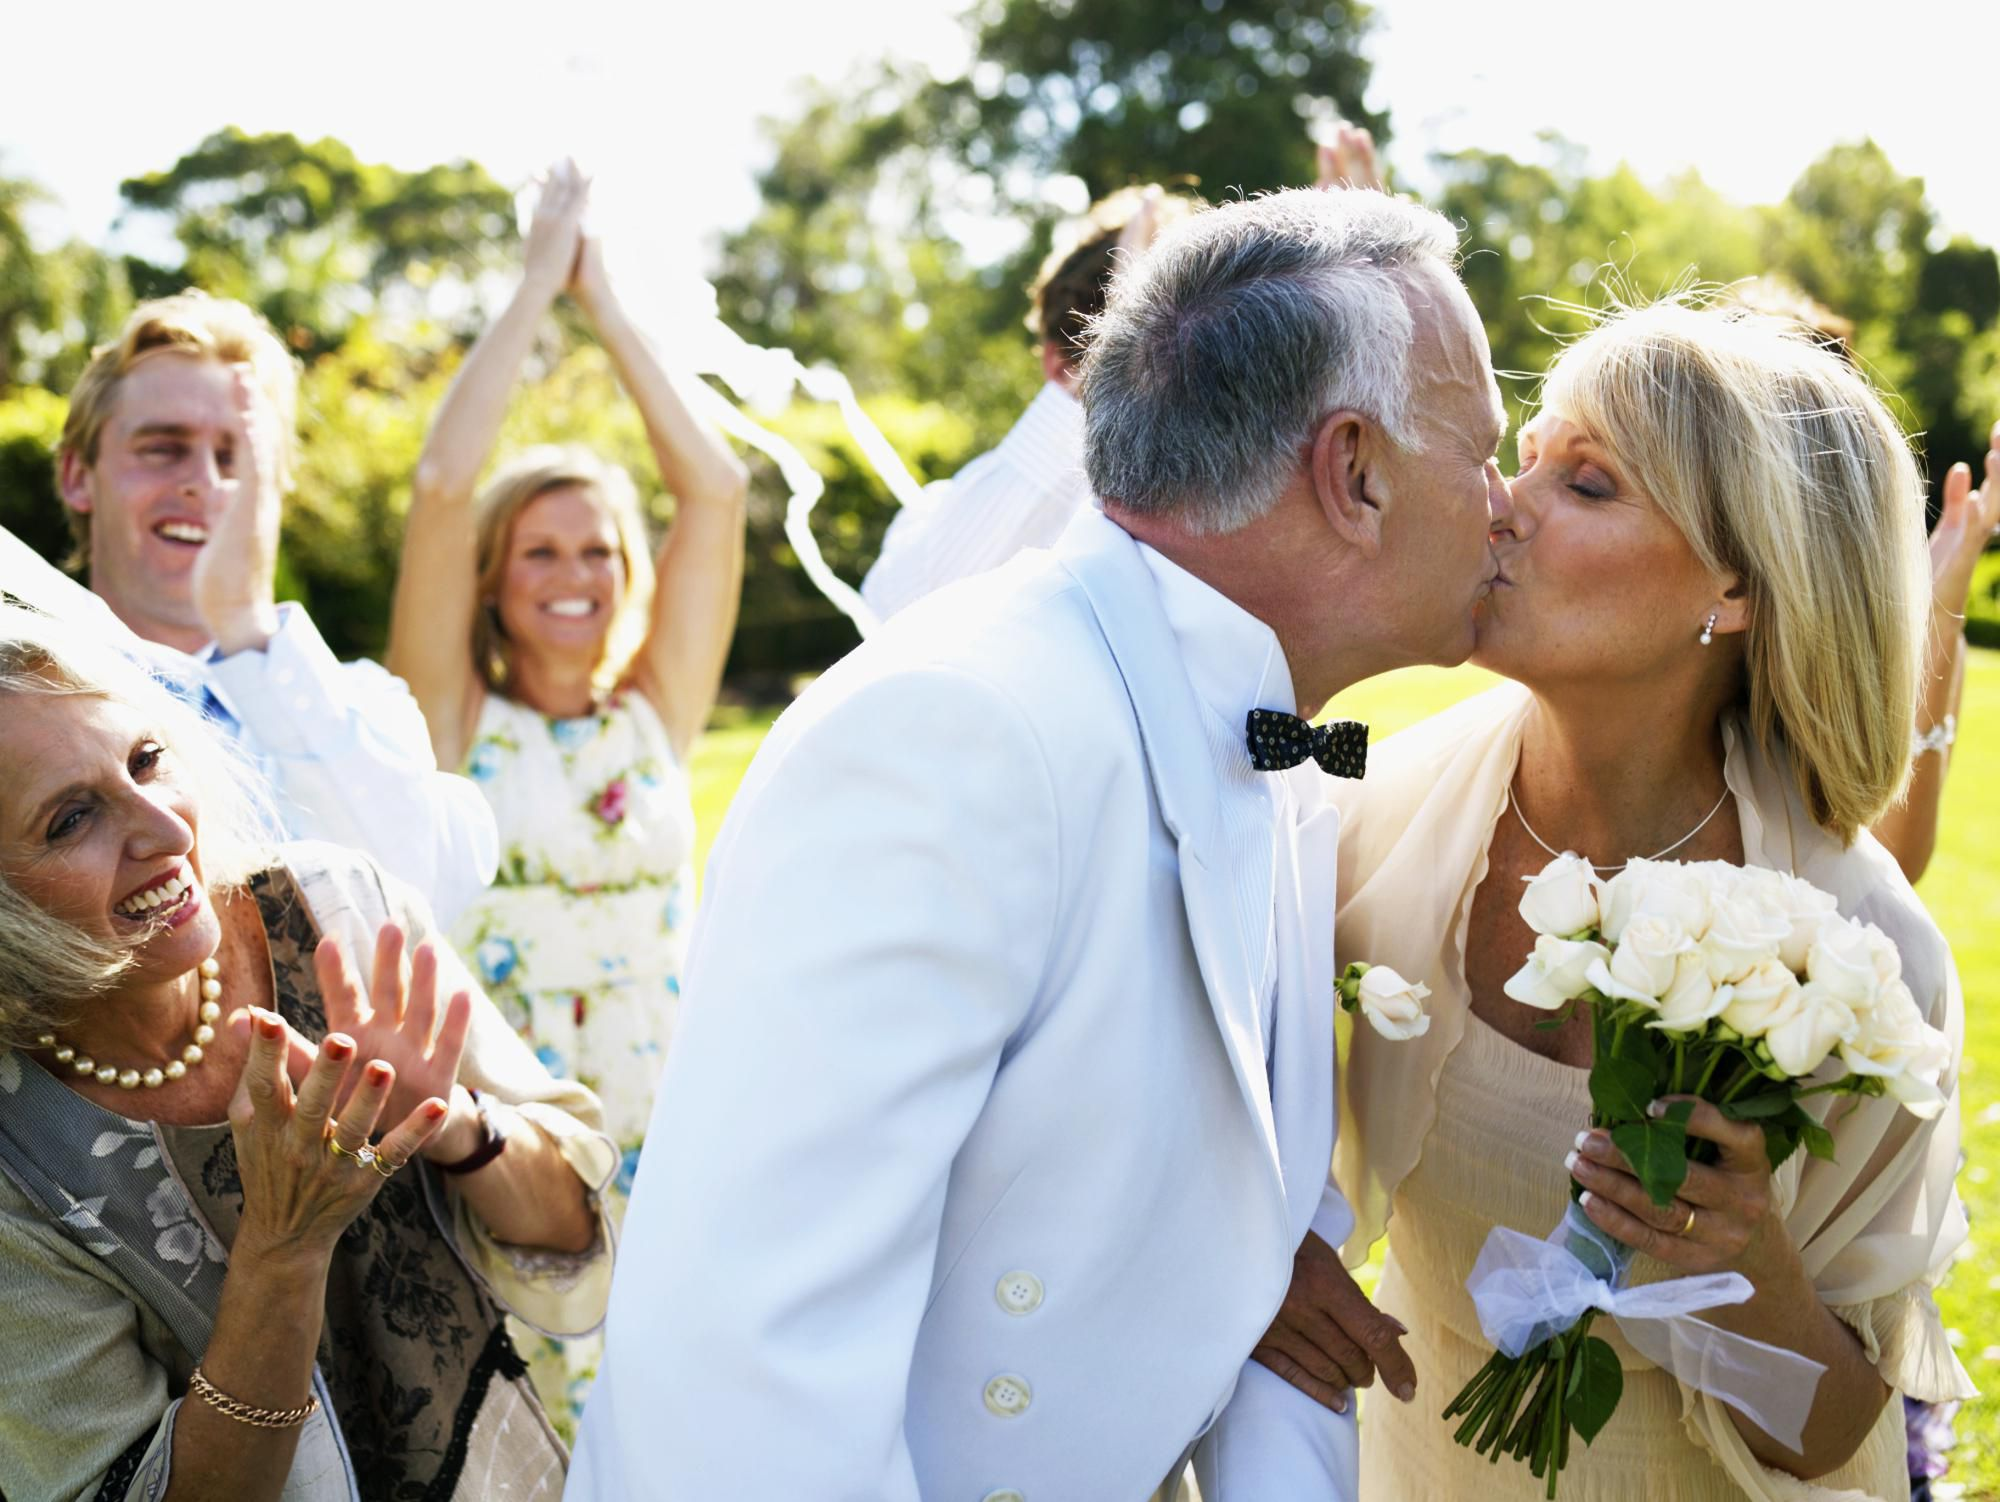 Smart Tips For Second Weddings To Ease Your Etiquette Worries